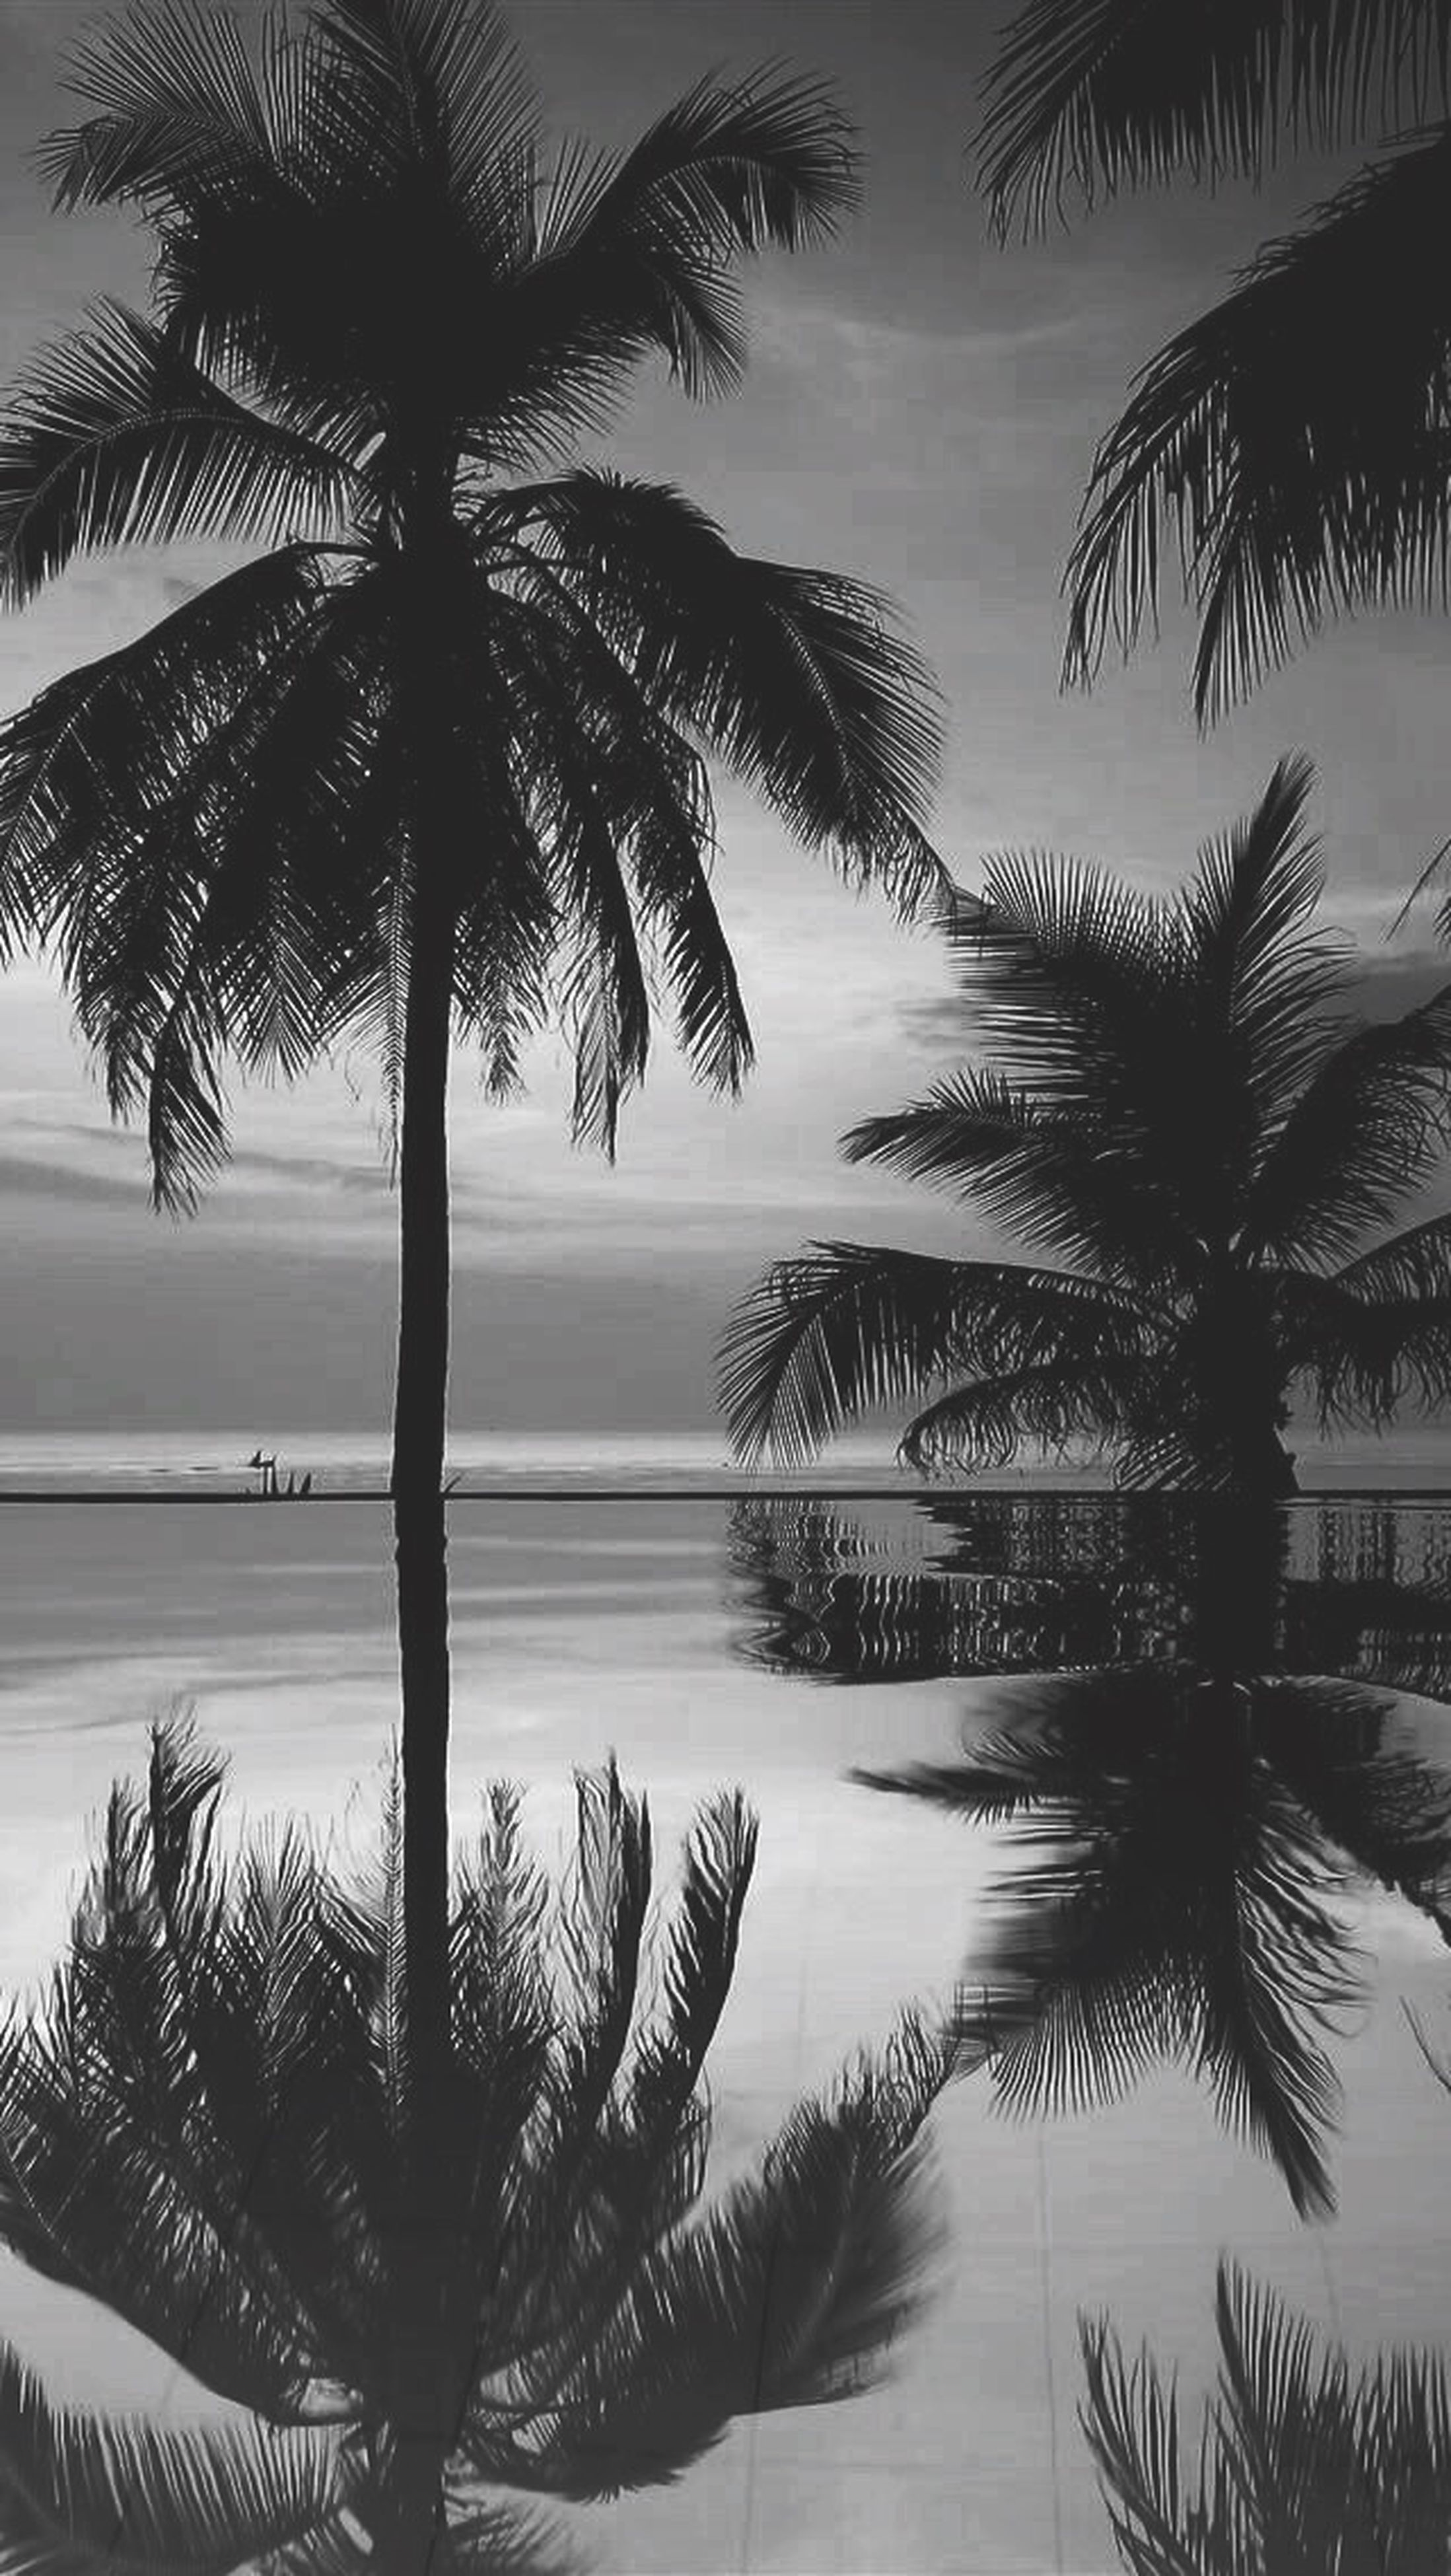 palm tree, tree, sea, tranquility, water, tranquil scene, sky, beauty in nature, scenics, horizon over water, beach, nature, growth, sunset, silhouette, tree trunk, palm leaf, coconut palm tree, shore, idyllic